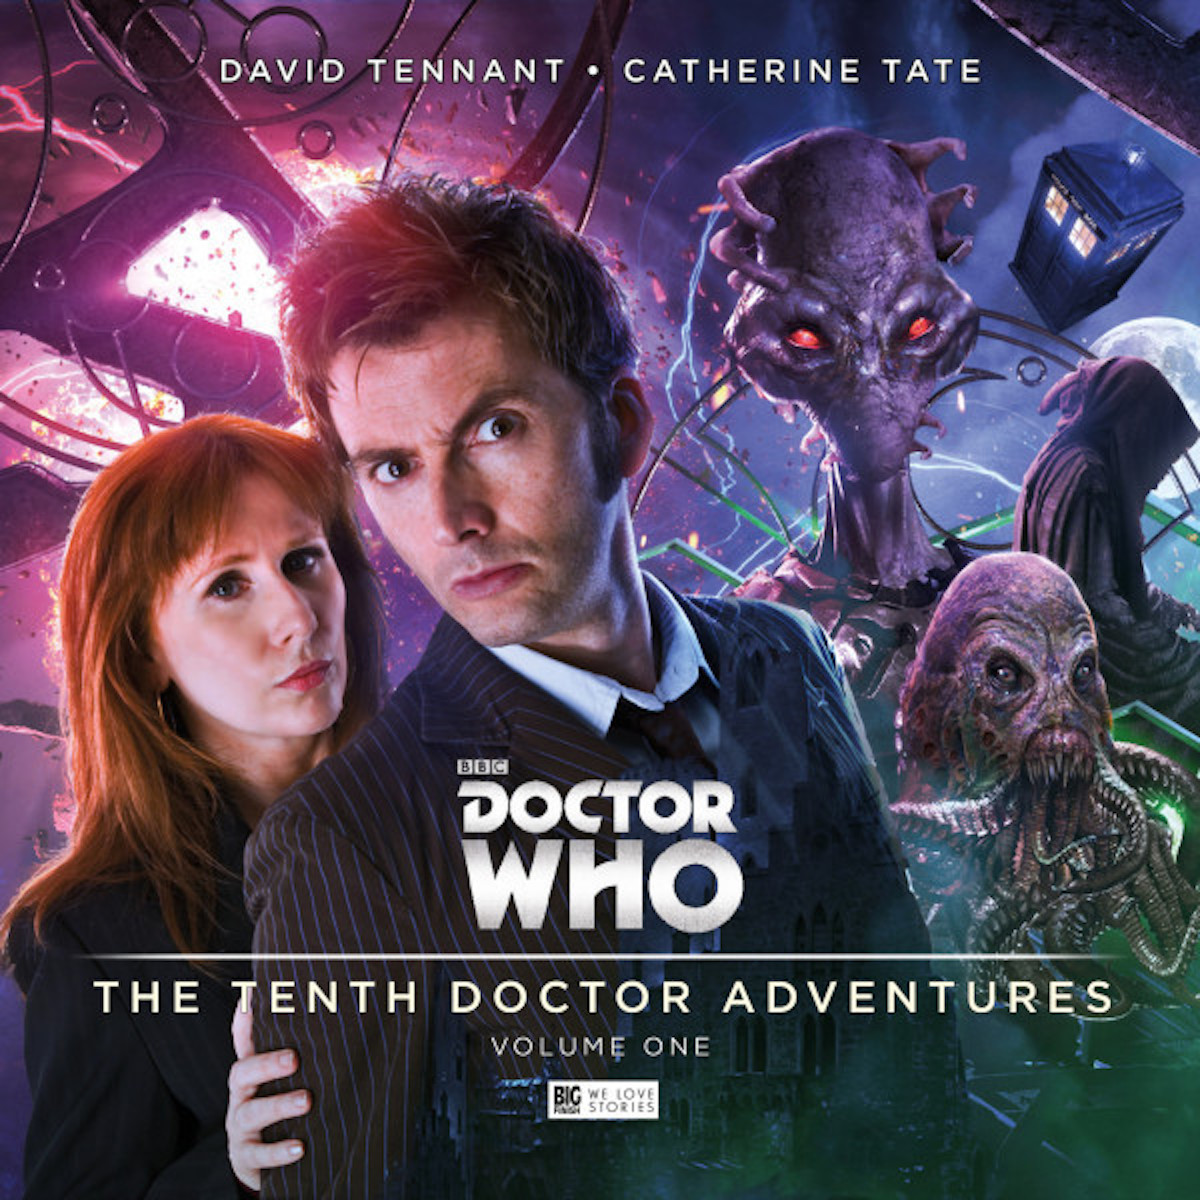 The Tenth Doctor Adventures Volume One